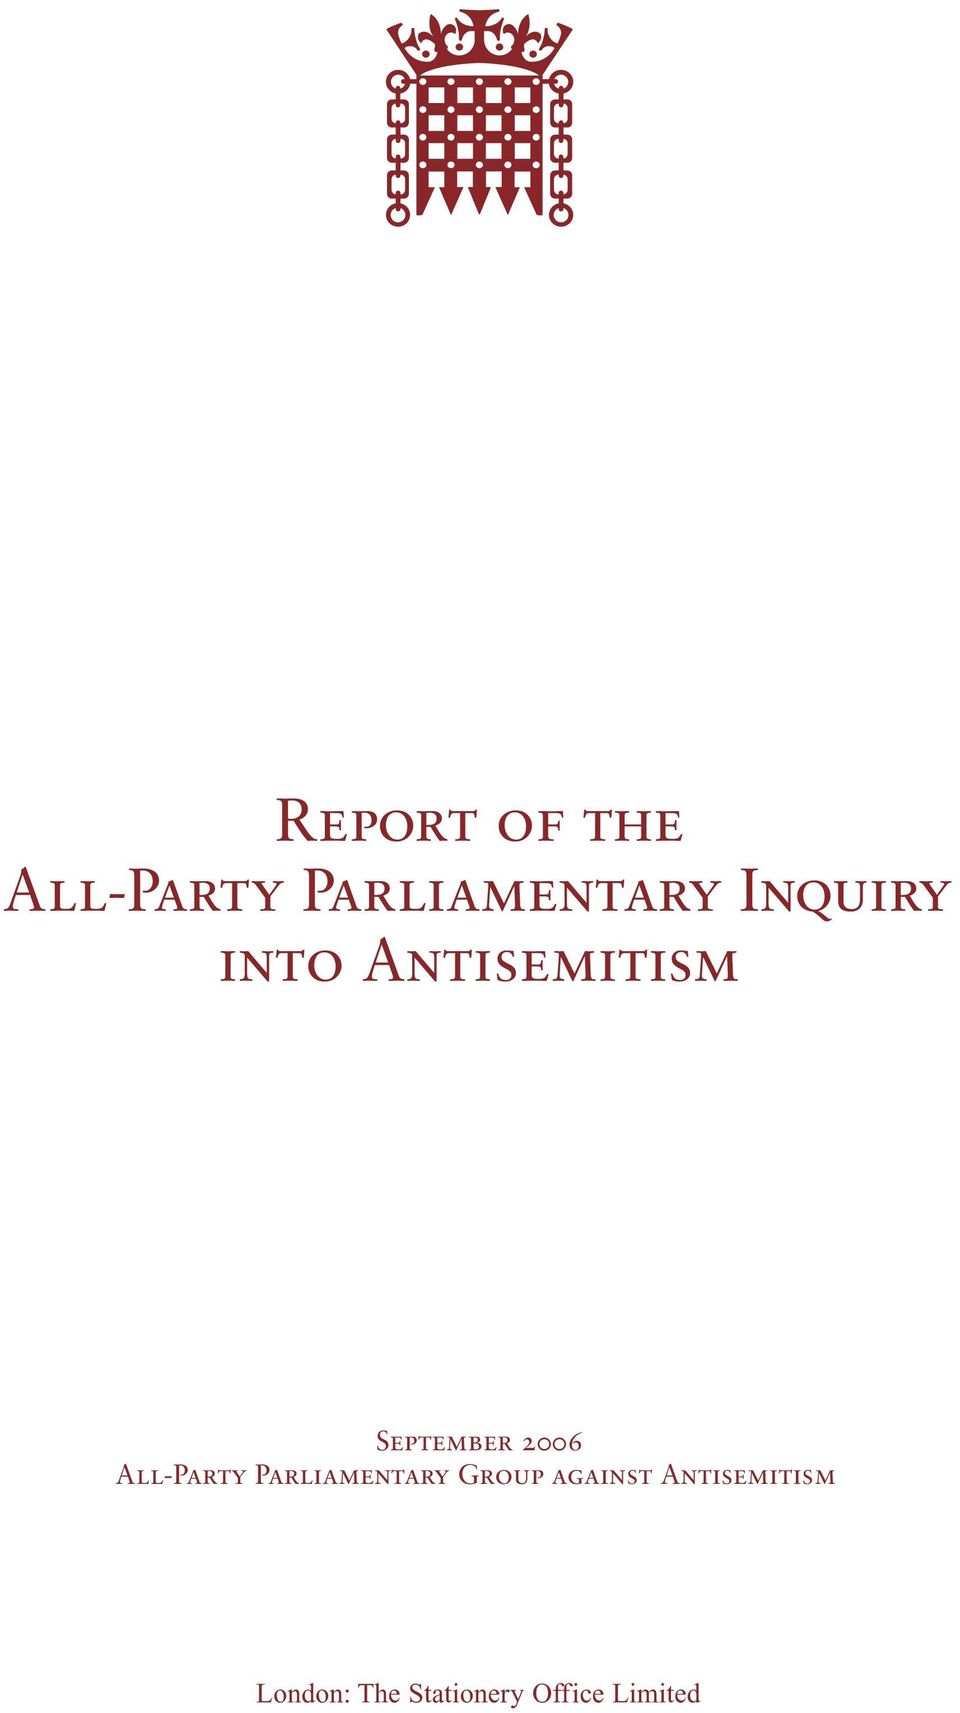 All-Party Parliamentary Group against